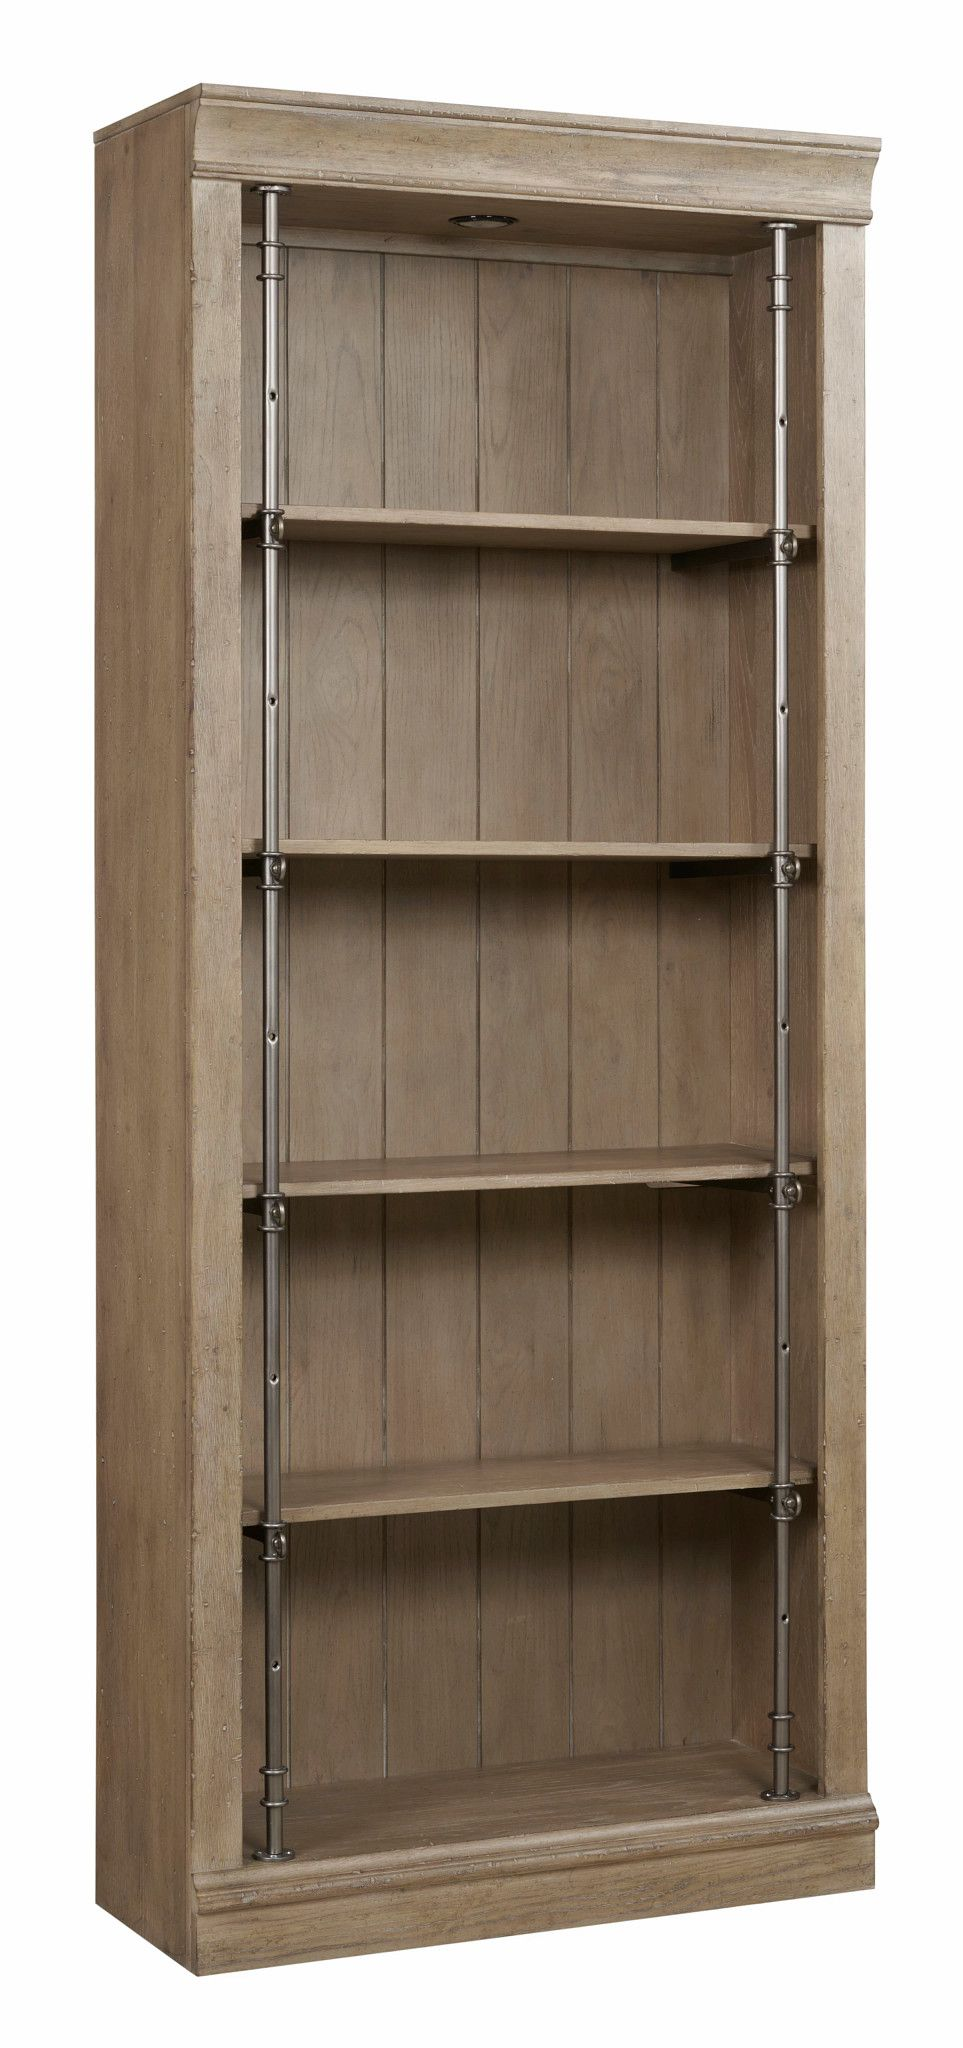 Donelson Bunching Bookcase by Hammary at Jacksonville Furniture Mart